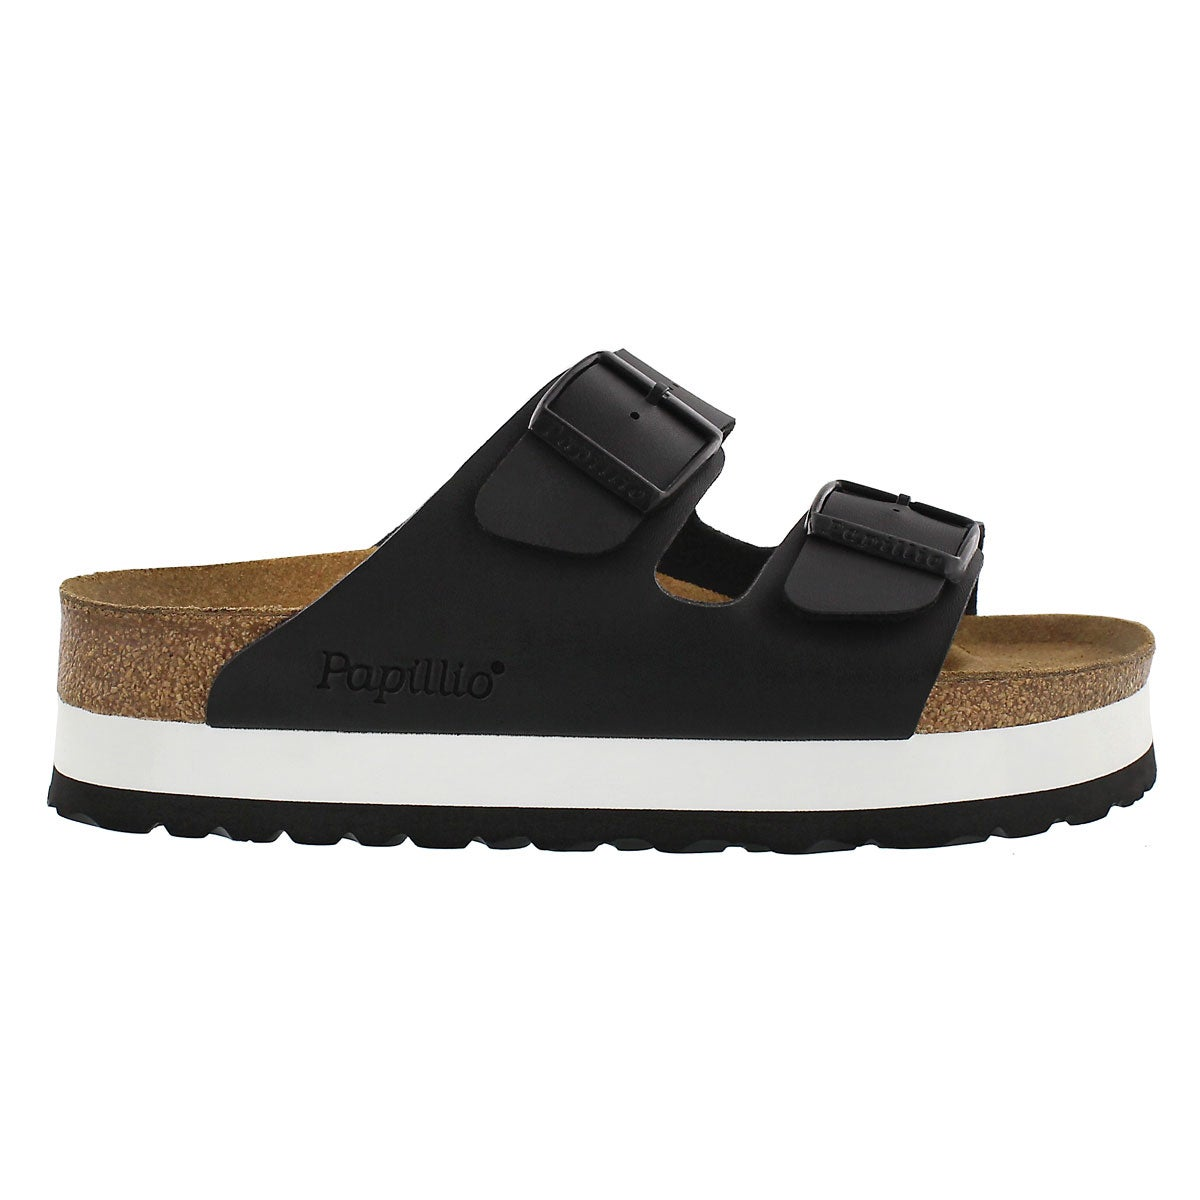 Lds Arizona Platform blk sandal - Narrow